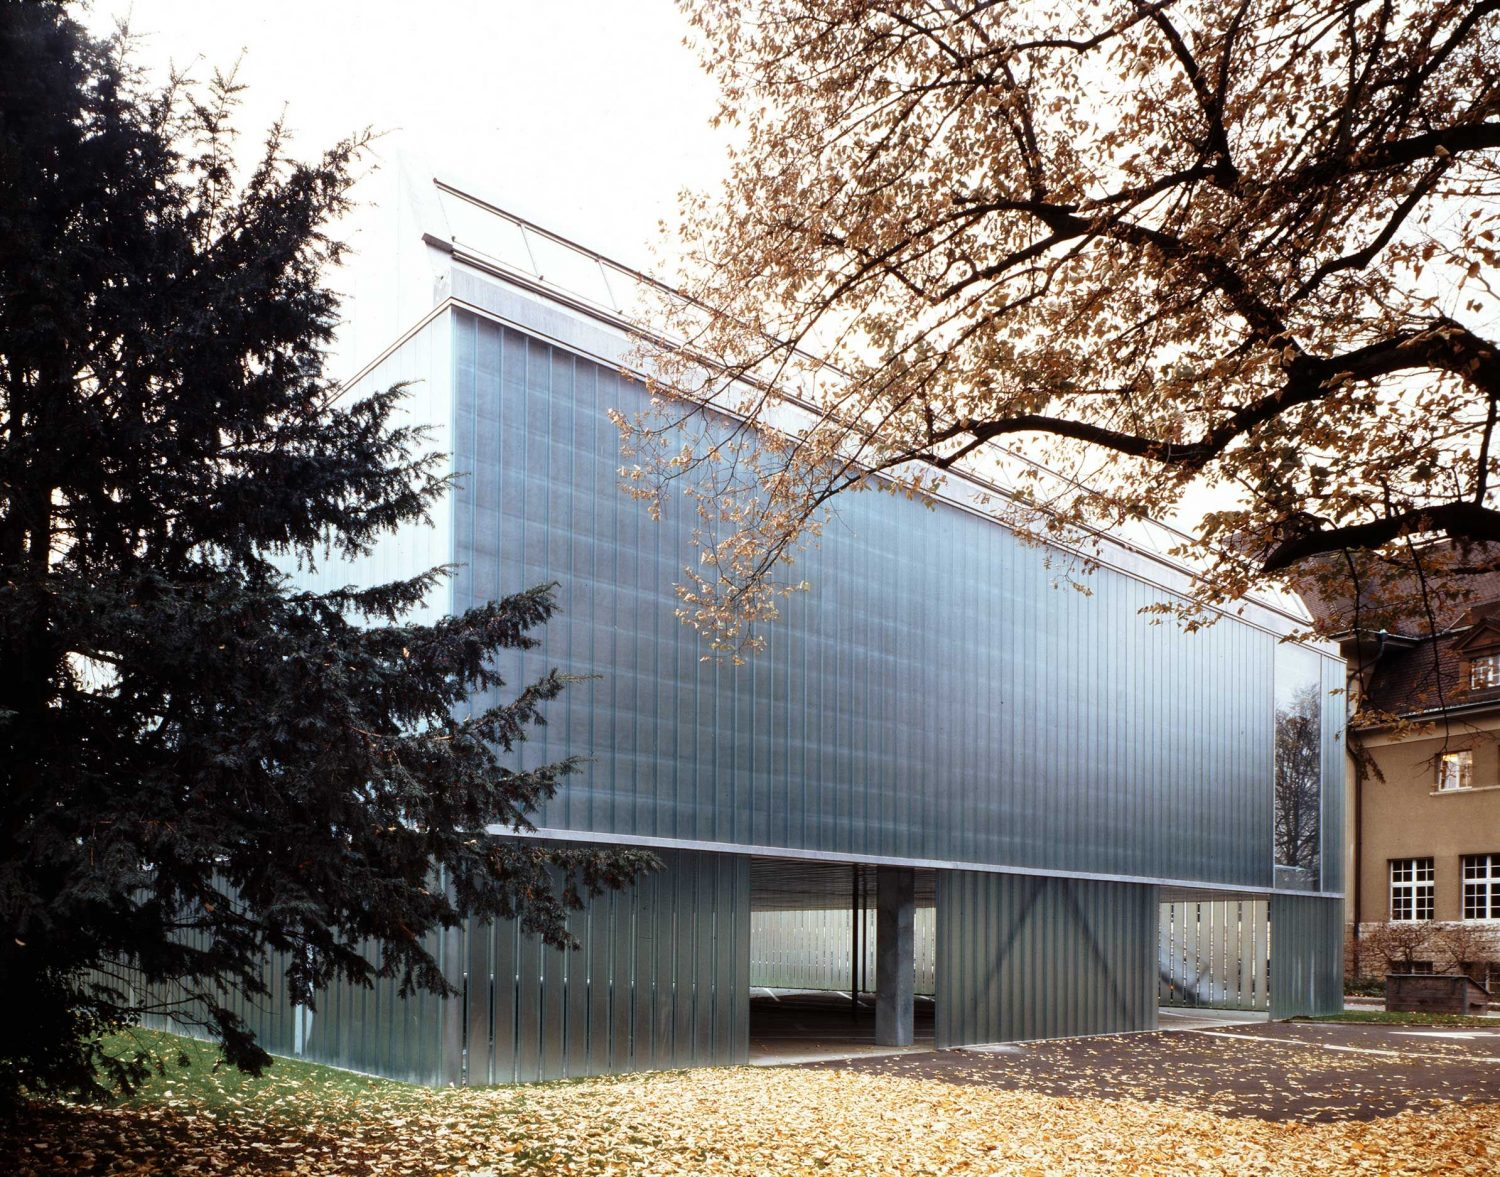 Extension of Kunstmuseum Winterthur post image